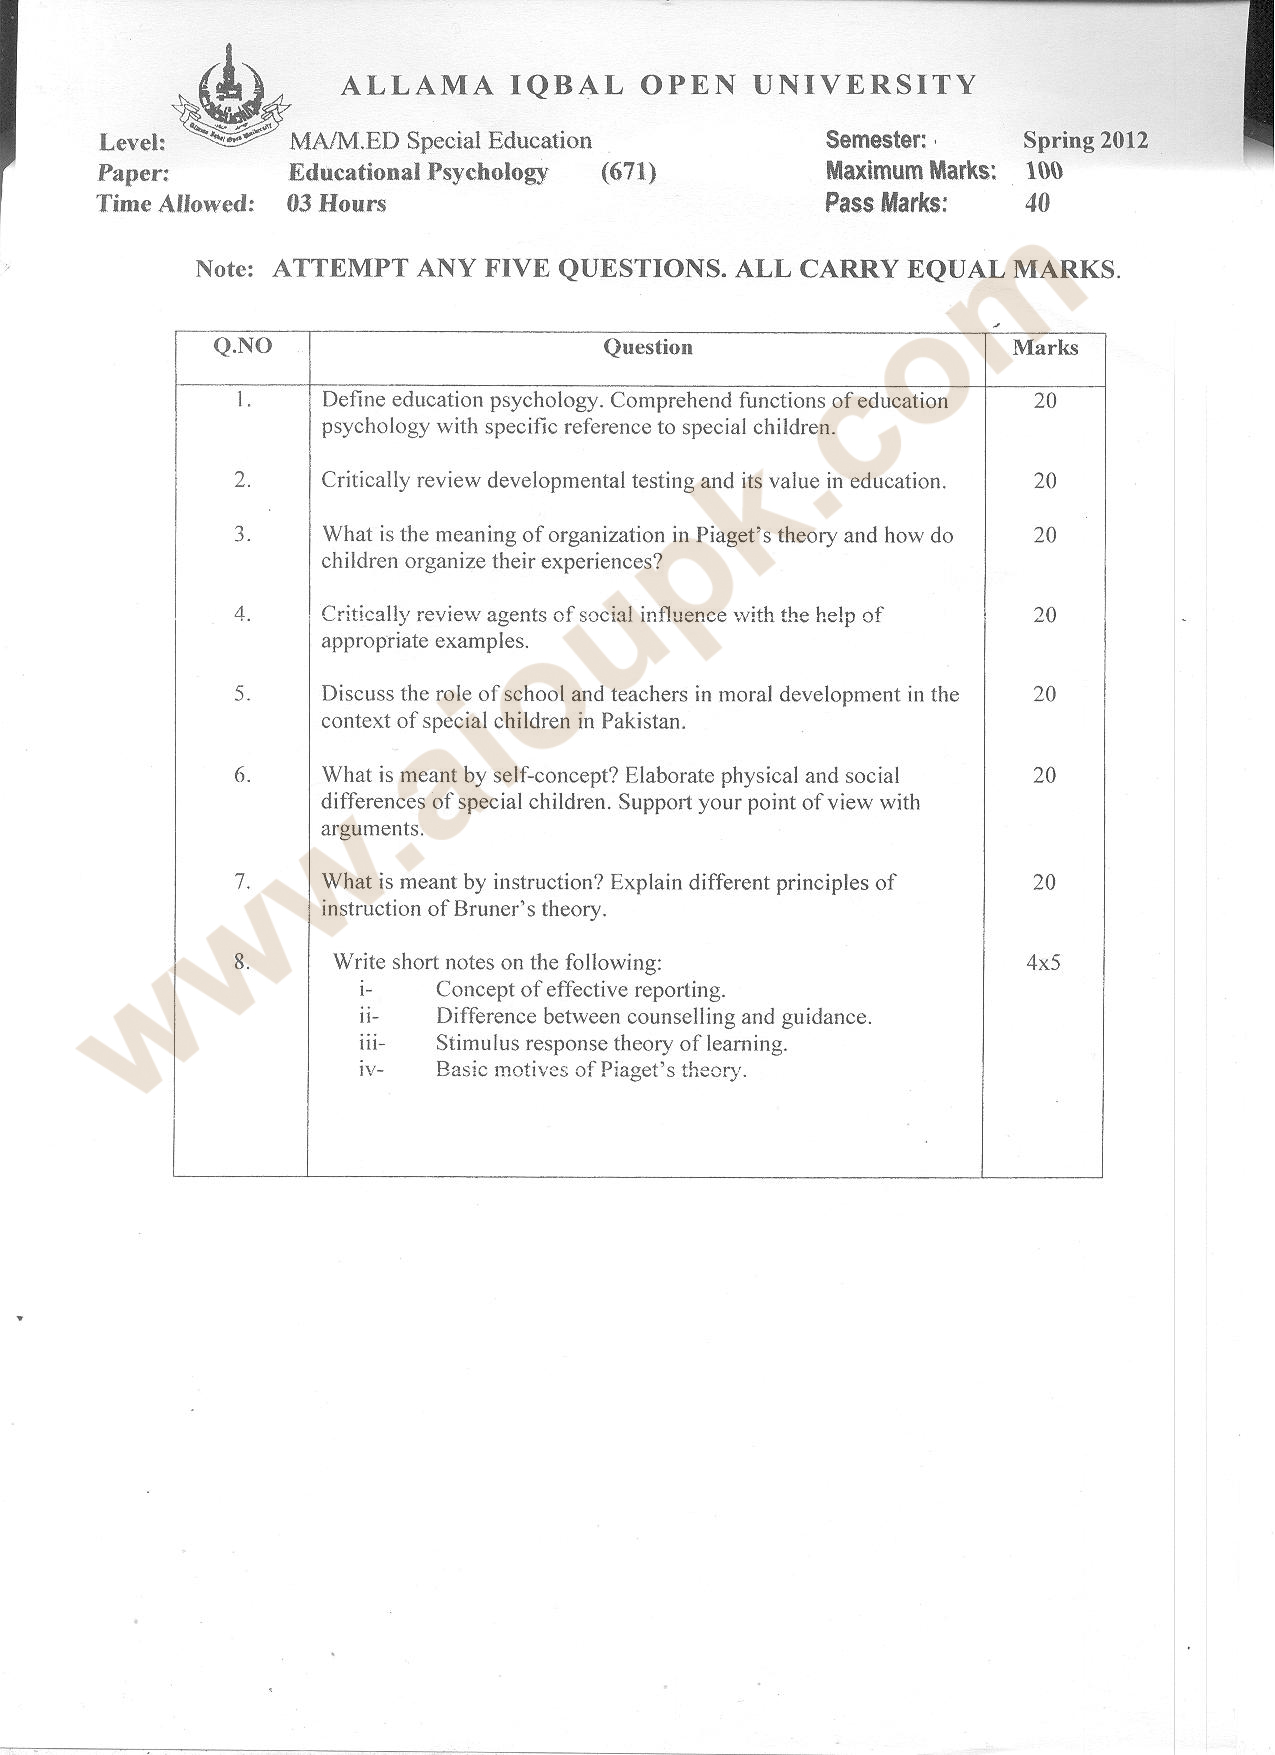 educational psychology essay Custom educational psychology essay paper a framework for an educational psychology of assessment for teaching and learning is proposed, consisting of three dimensions: epistemology and theories, the interpreter and user, and assessment characteristics.